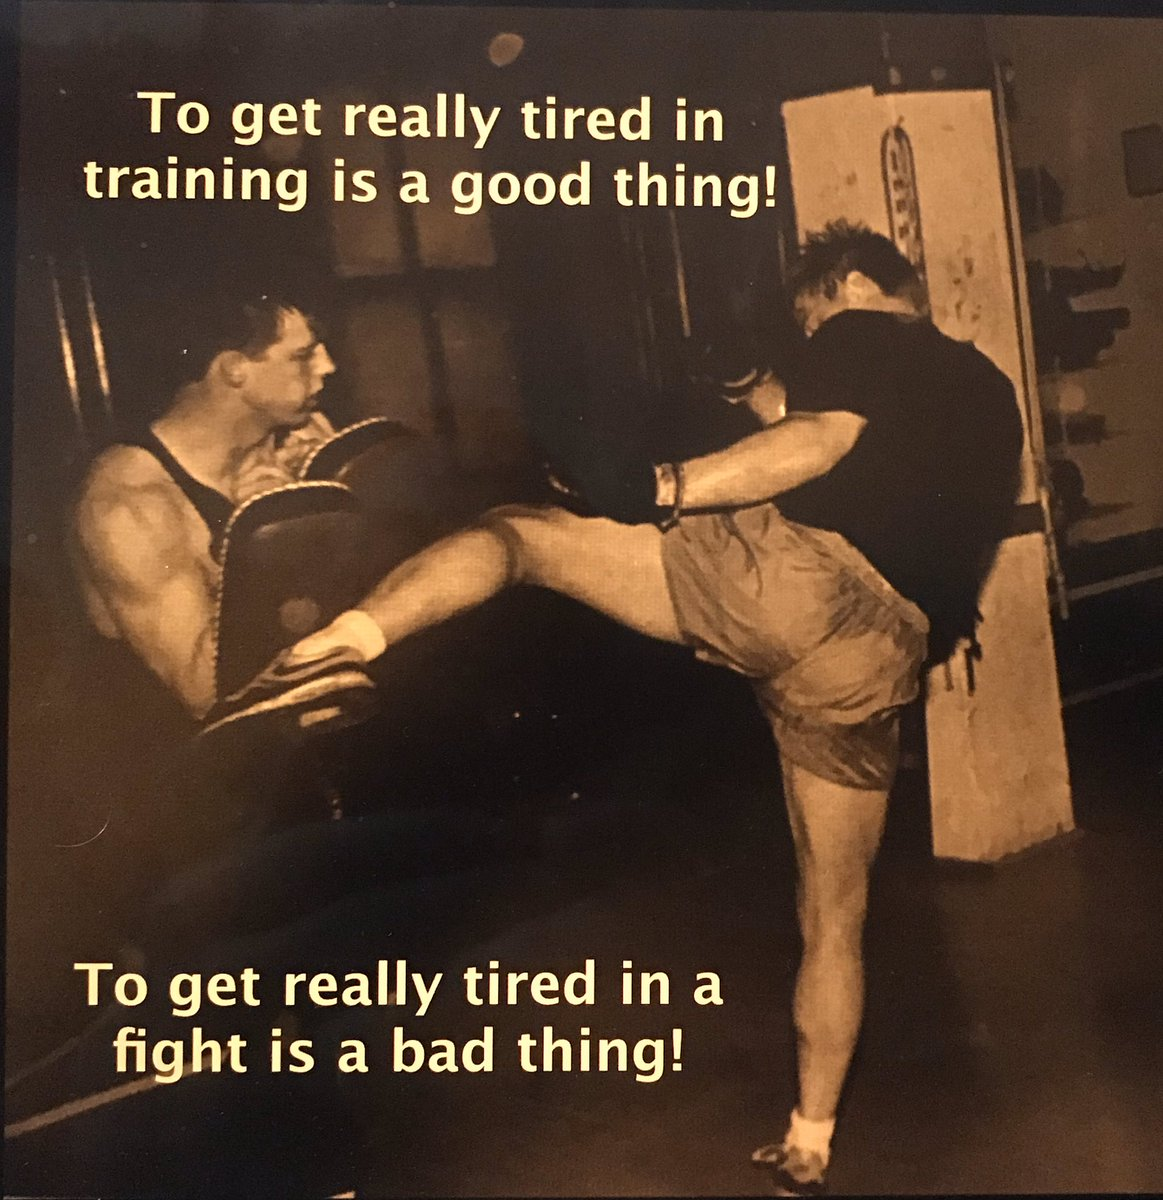 Training is the heart of the combat athletes experience.  It doesn't matter if you do BJJ, Boxing, Muay Thai, Grappling, MMA, Wrestling... your goal is to get really tired in training so you don't get really tired when it counts! #KeepPounding #Training #push #fight #workhard https://t.co/xDaMycddKg